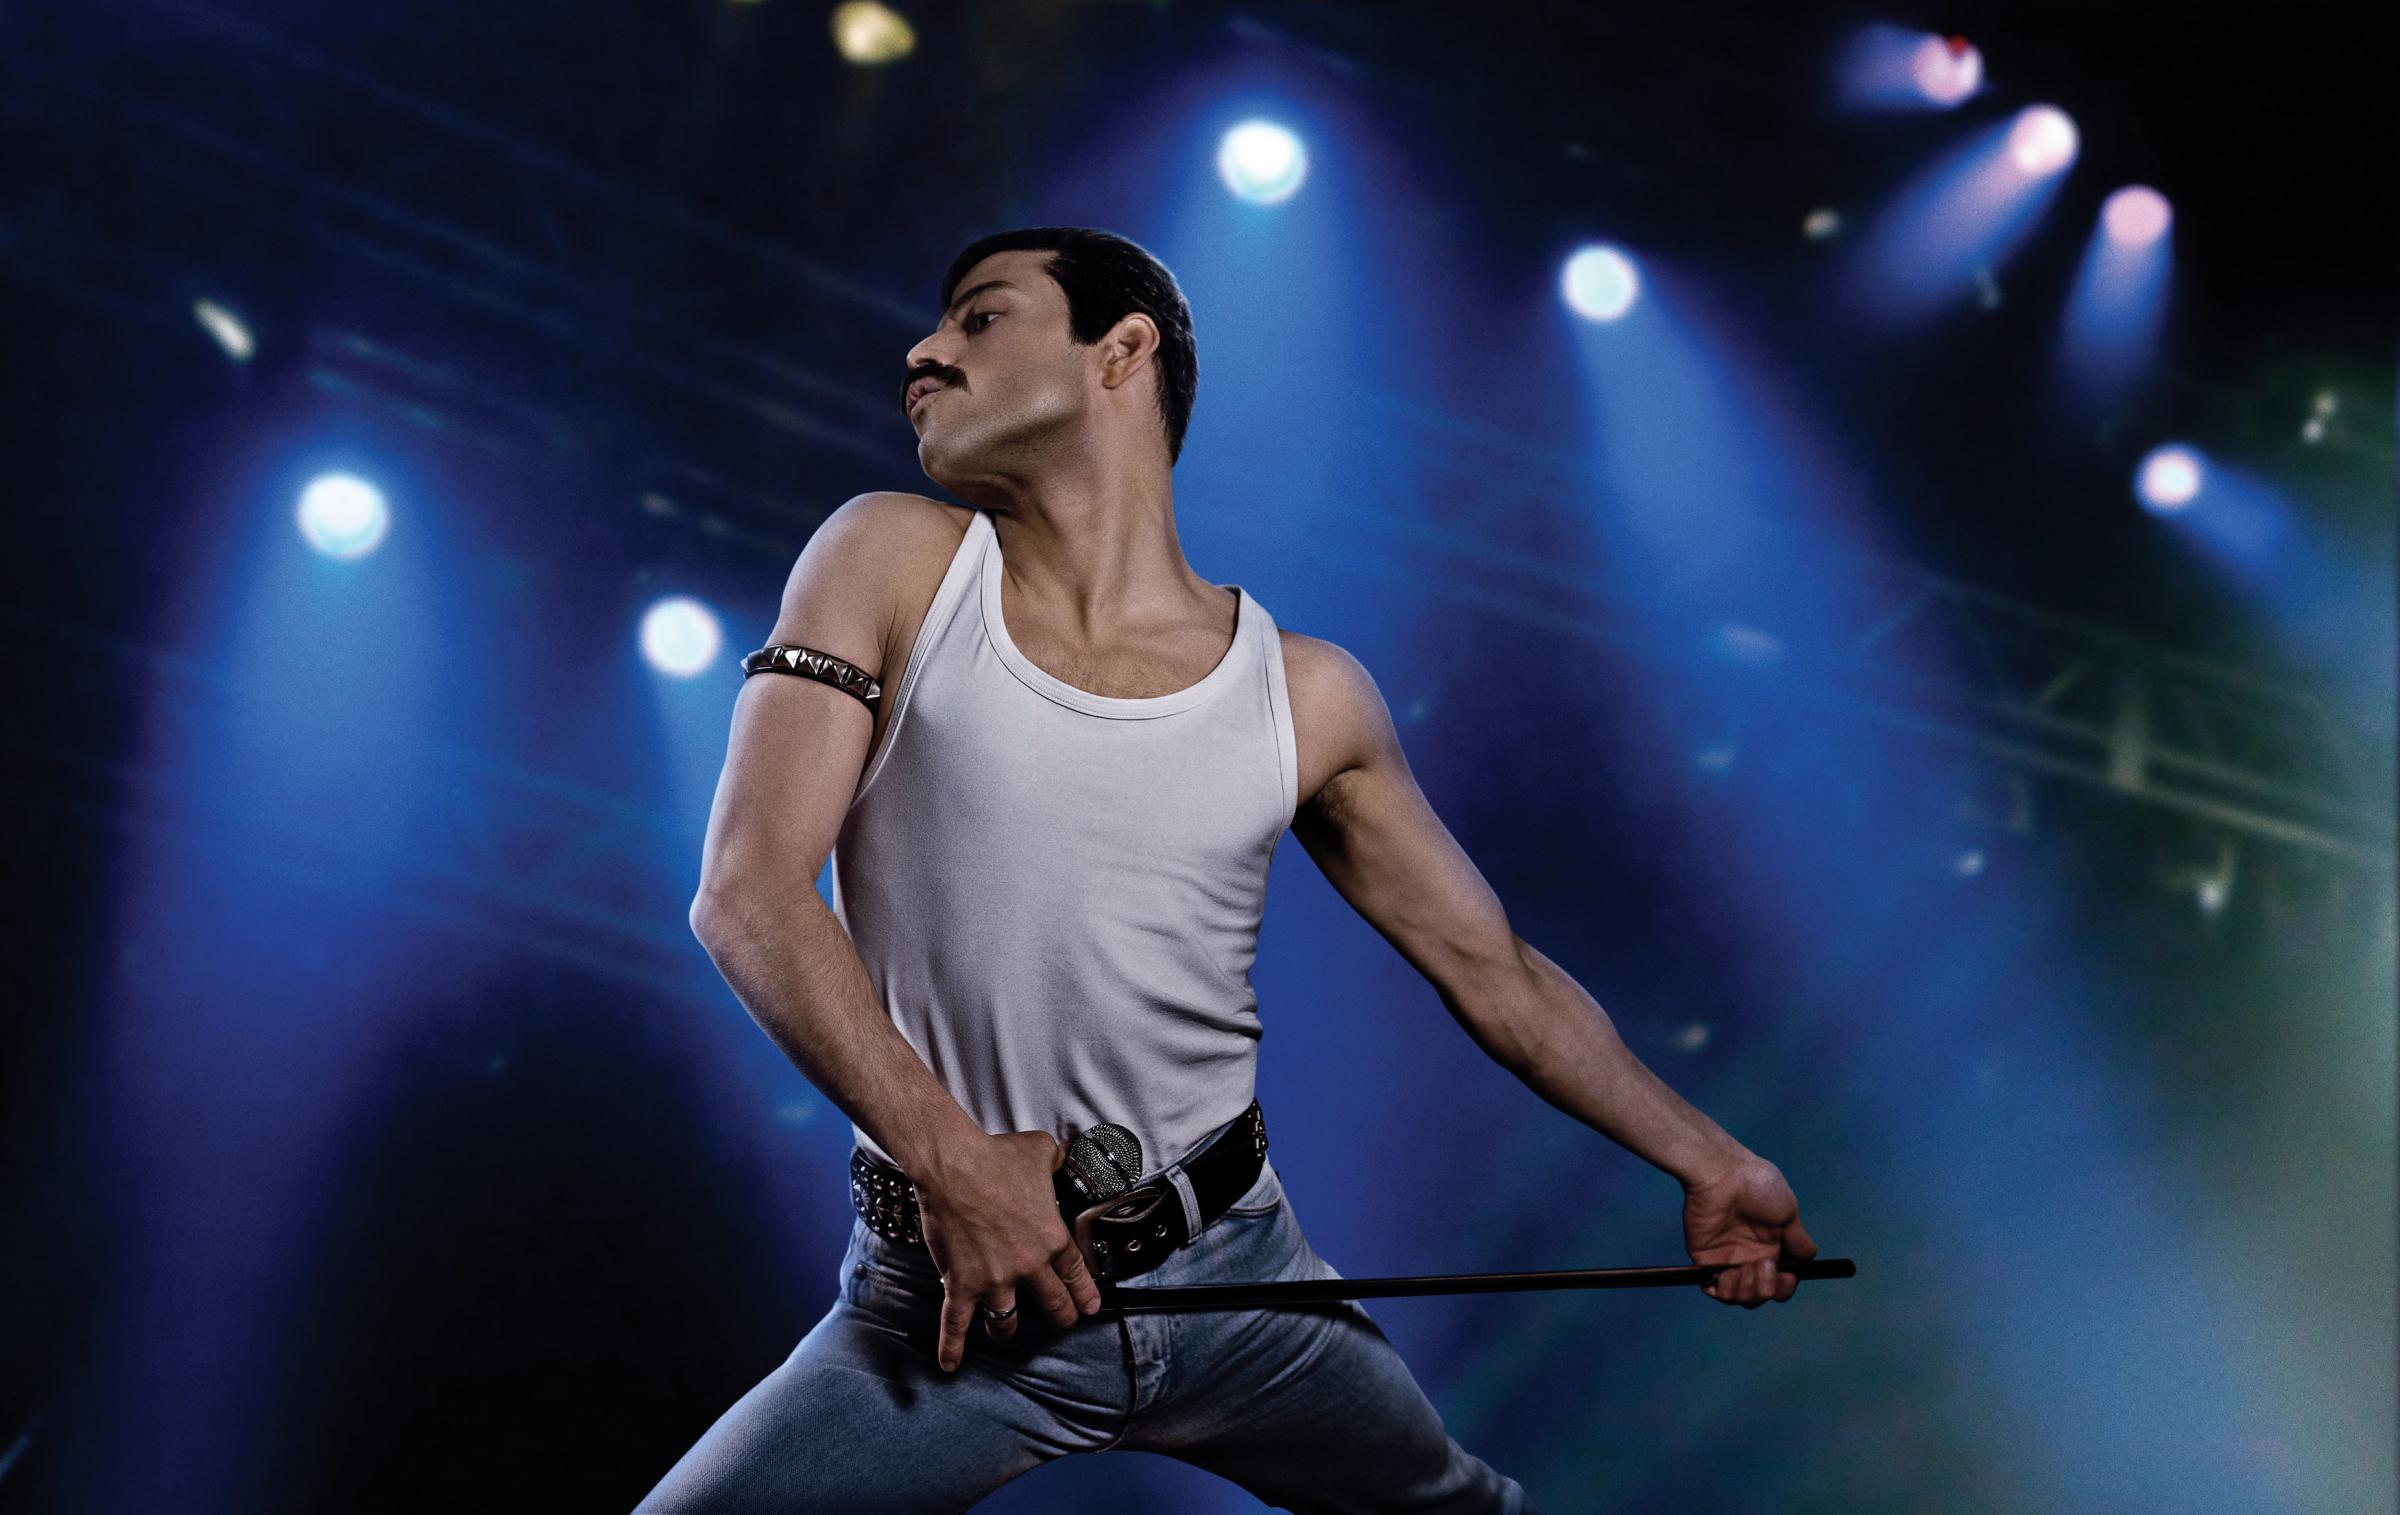 Bohemian Rhapsody sing-along screening at Odeon Warrington for one night only